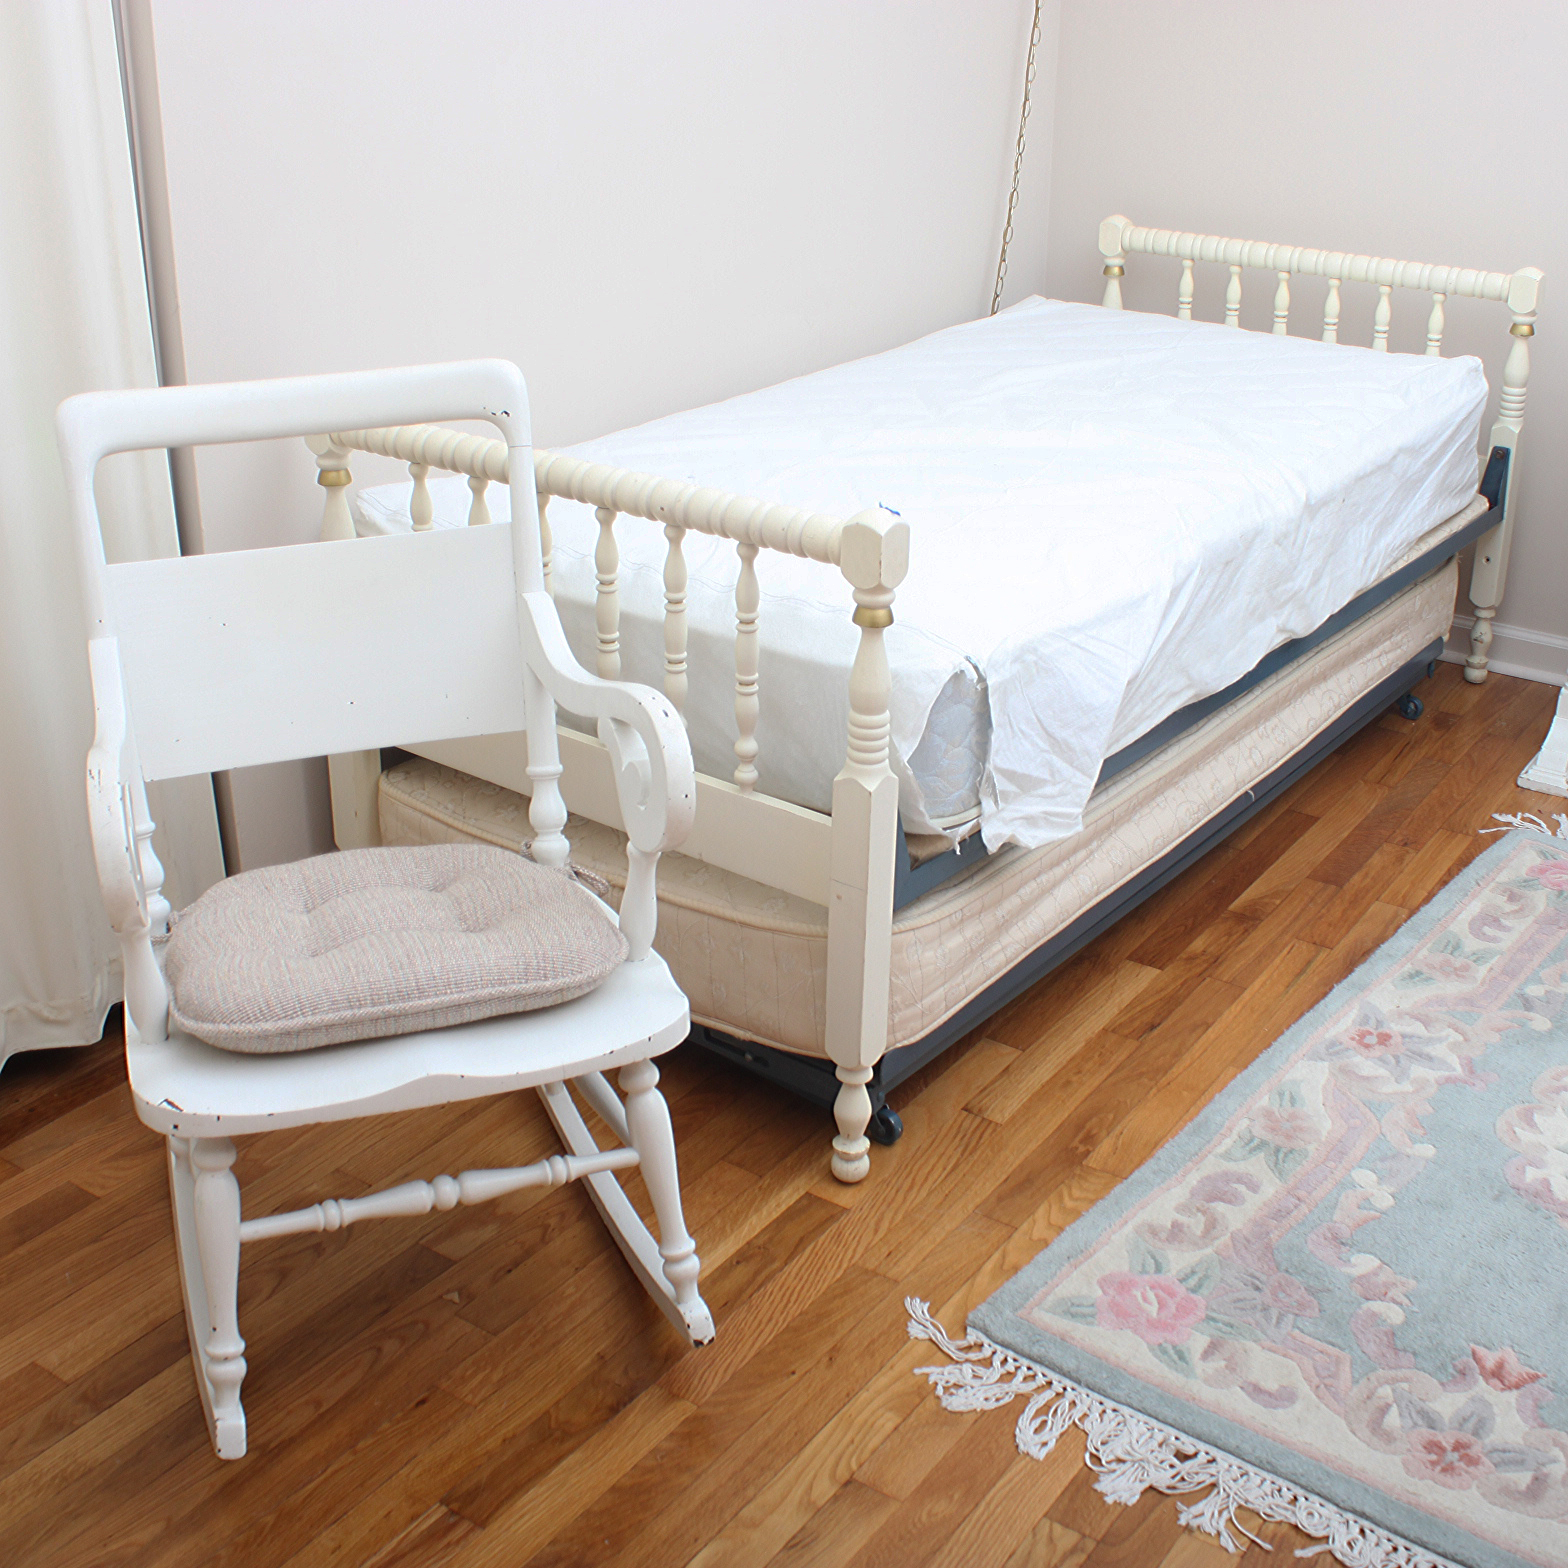 Vintage Jenny Lind Style Daybed With Trundle and Rocking Chair : EBTH